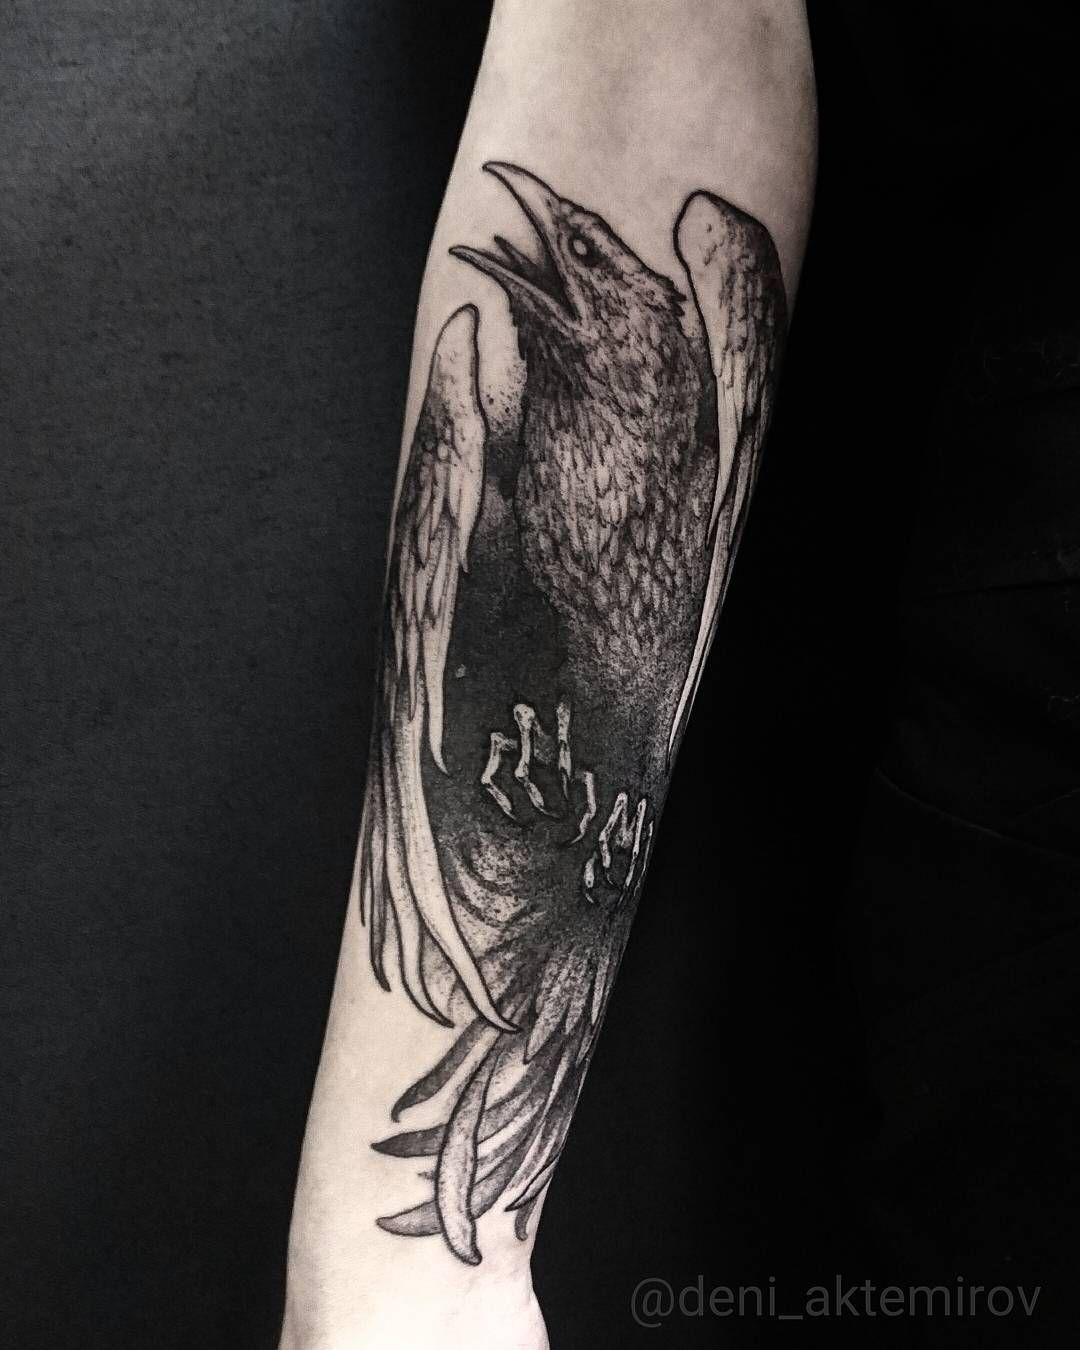 Bird Tattoos Meaning And Symbolism The Wild Tattoo Ideas And Designs